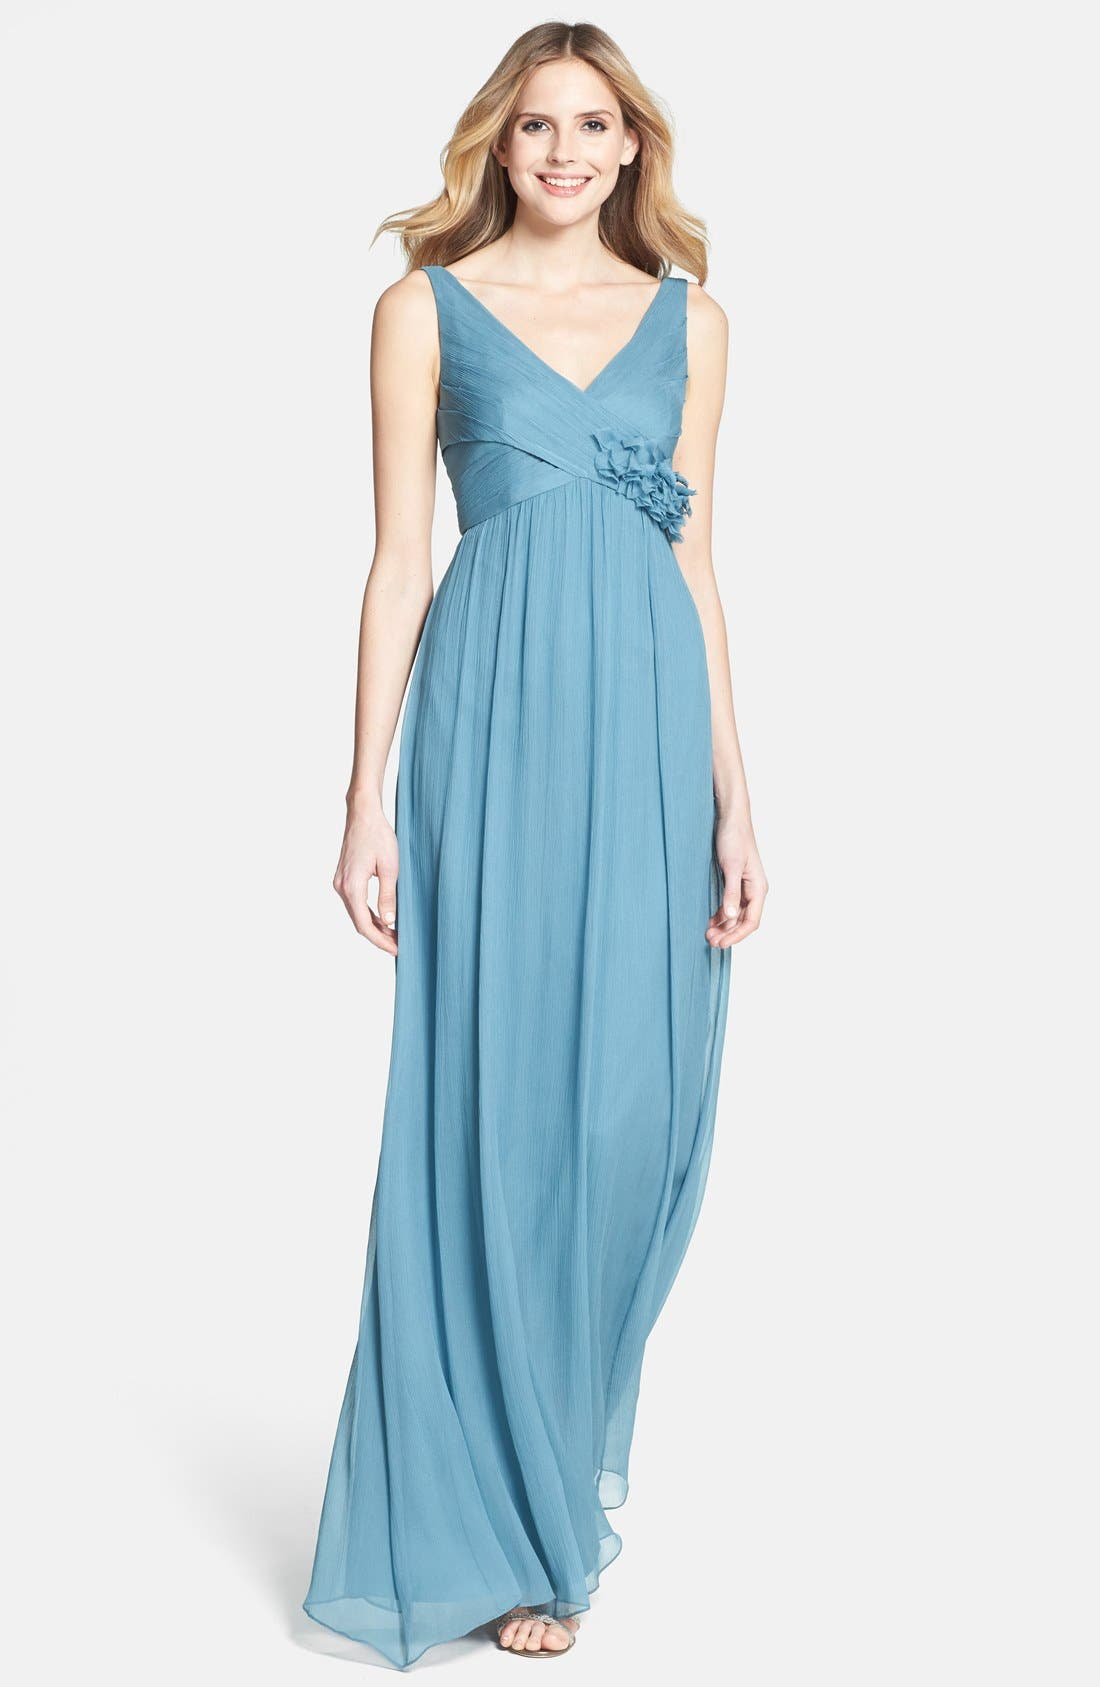 Main Image - Jenny Yoo 'Hayley' Sleeveless Crinkle Silk Chiffon Dress